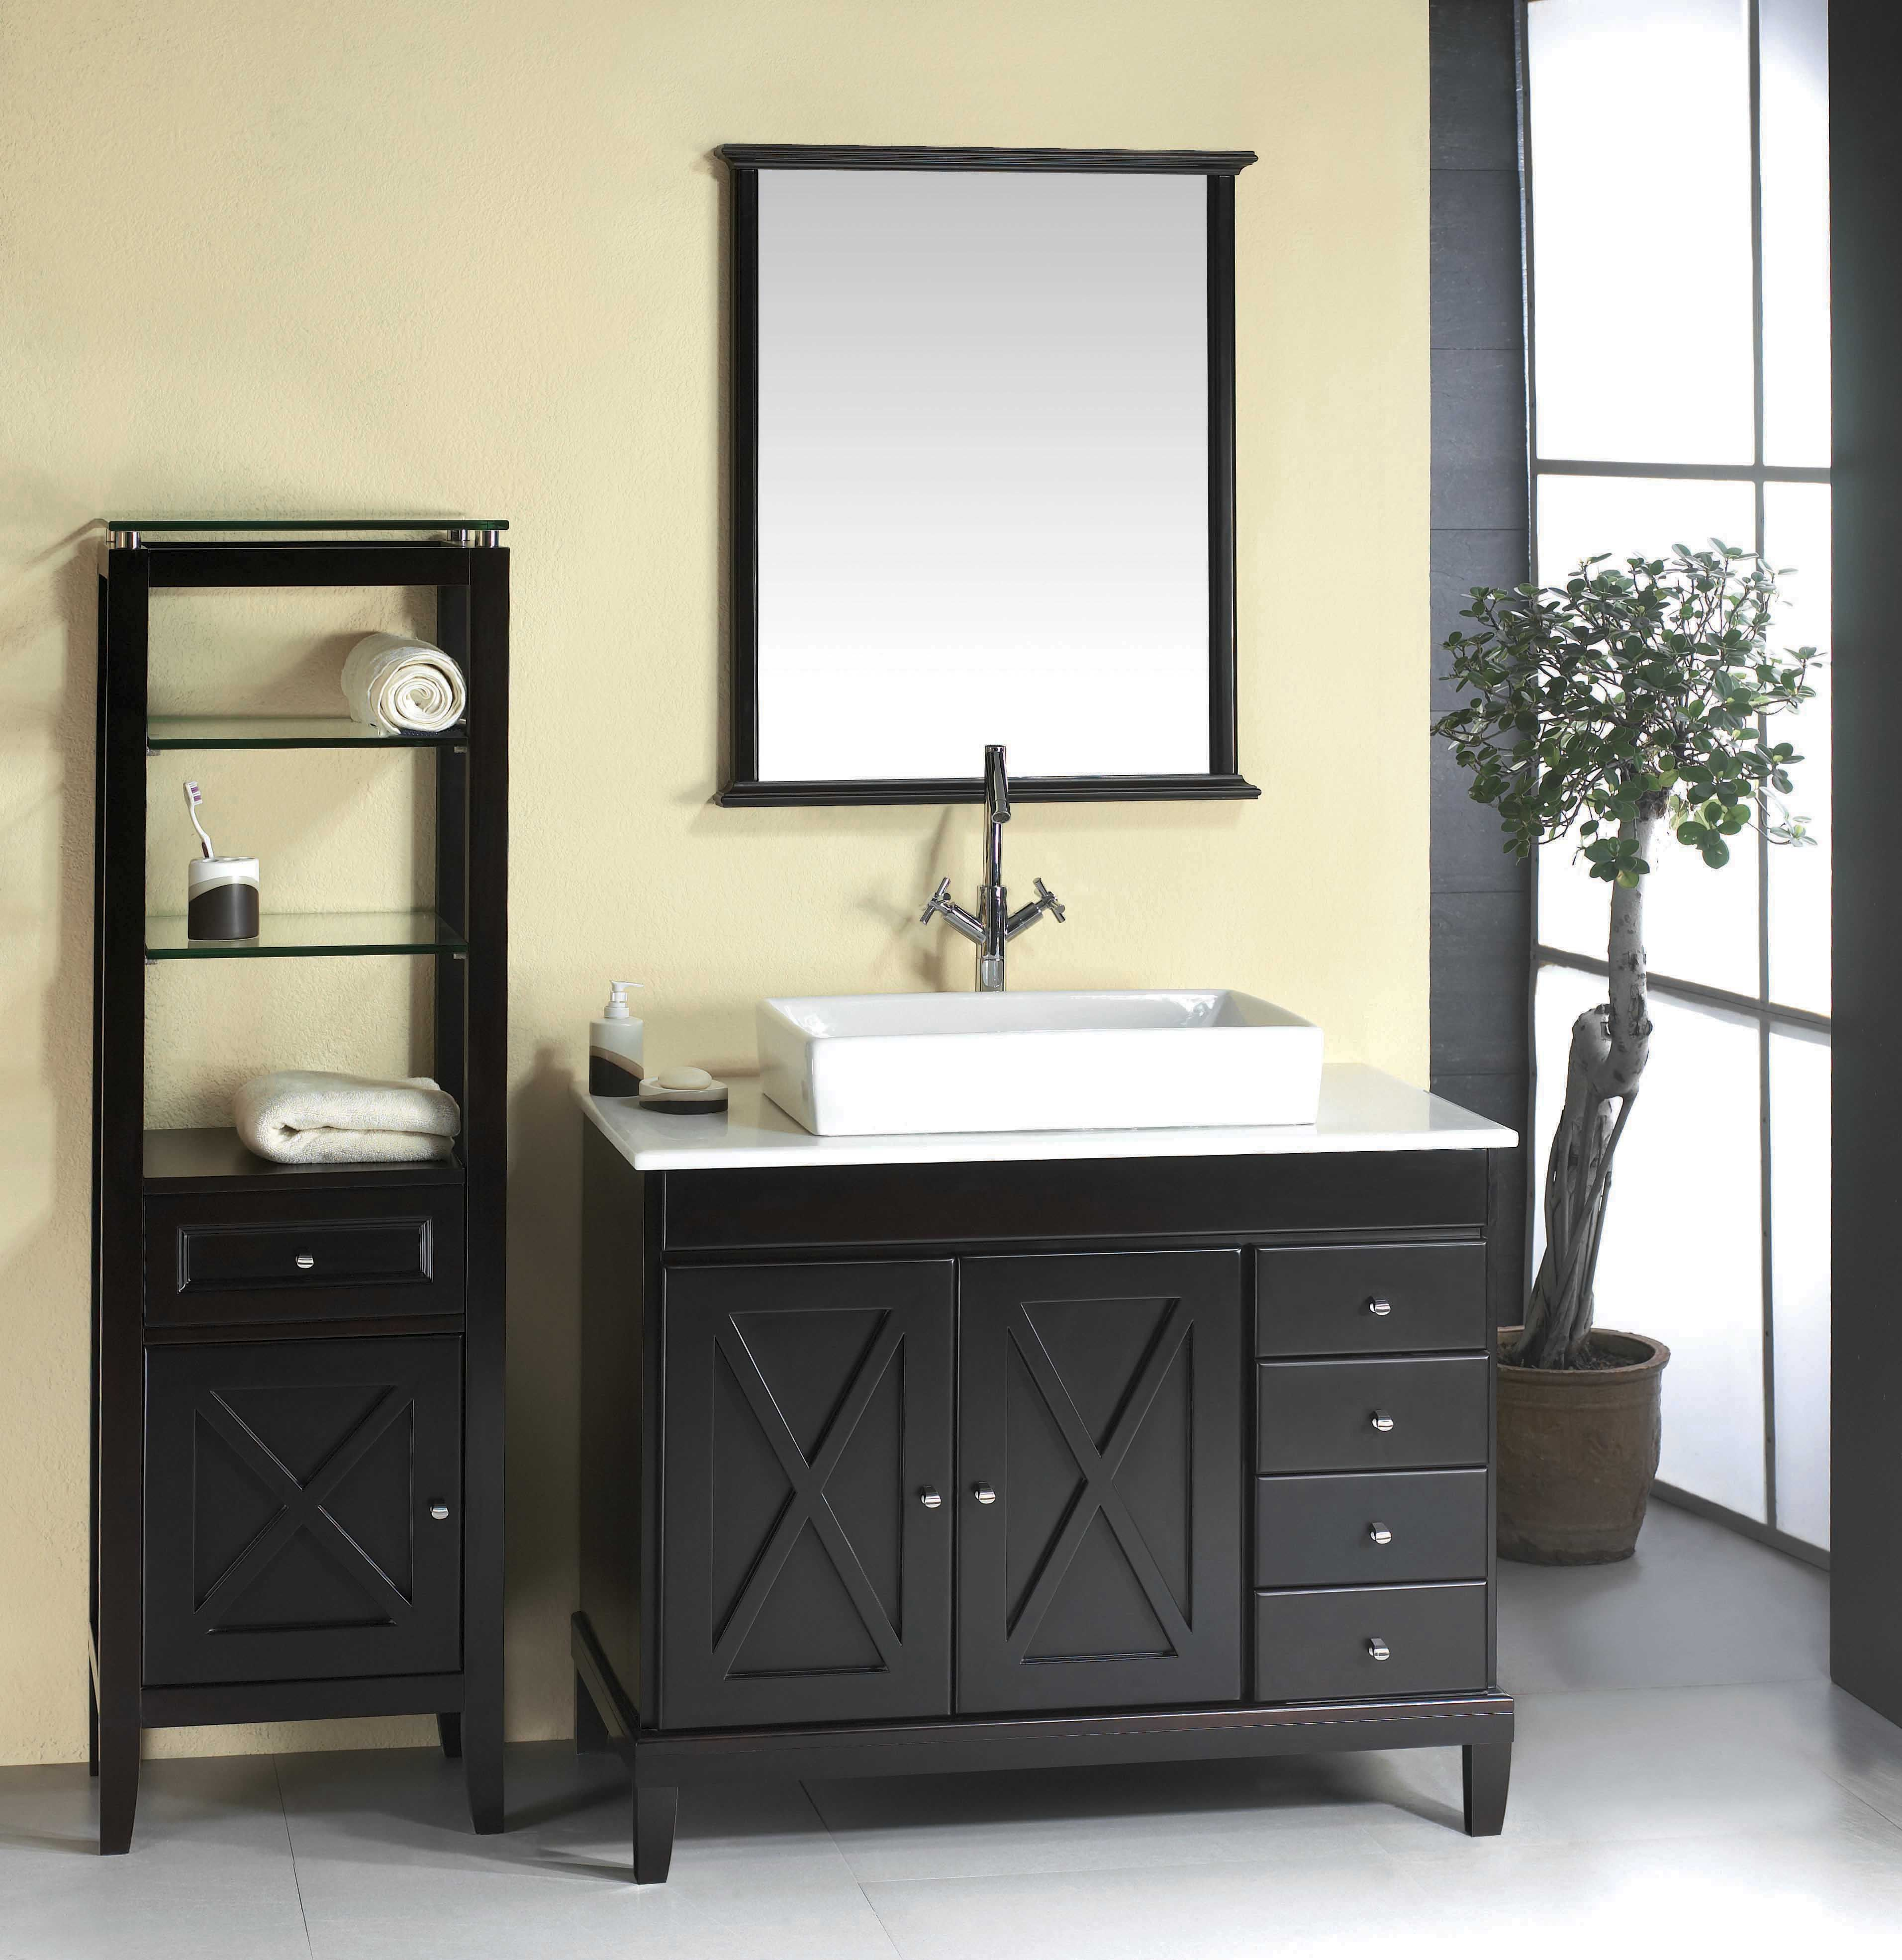 Lovely Small Deep Bathtubs Tiny Install A Bath Spout Shaped Image Of Bathroom Cabinets Small Bathroom Photo Ideas Young Bathroom Sink Drain Pipe Assembly BrightKitchen And Bath Design Show Chicago Modern Bathroom Vanities Cheap